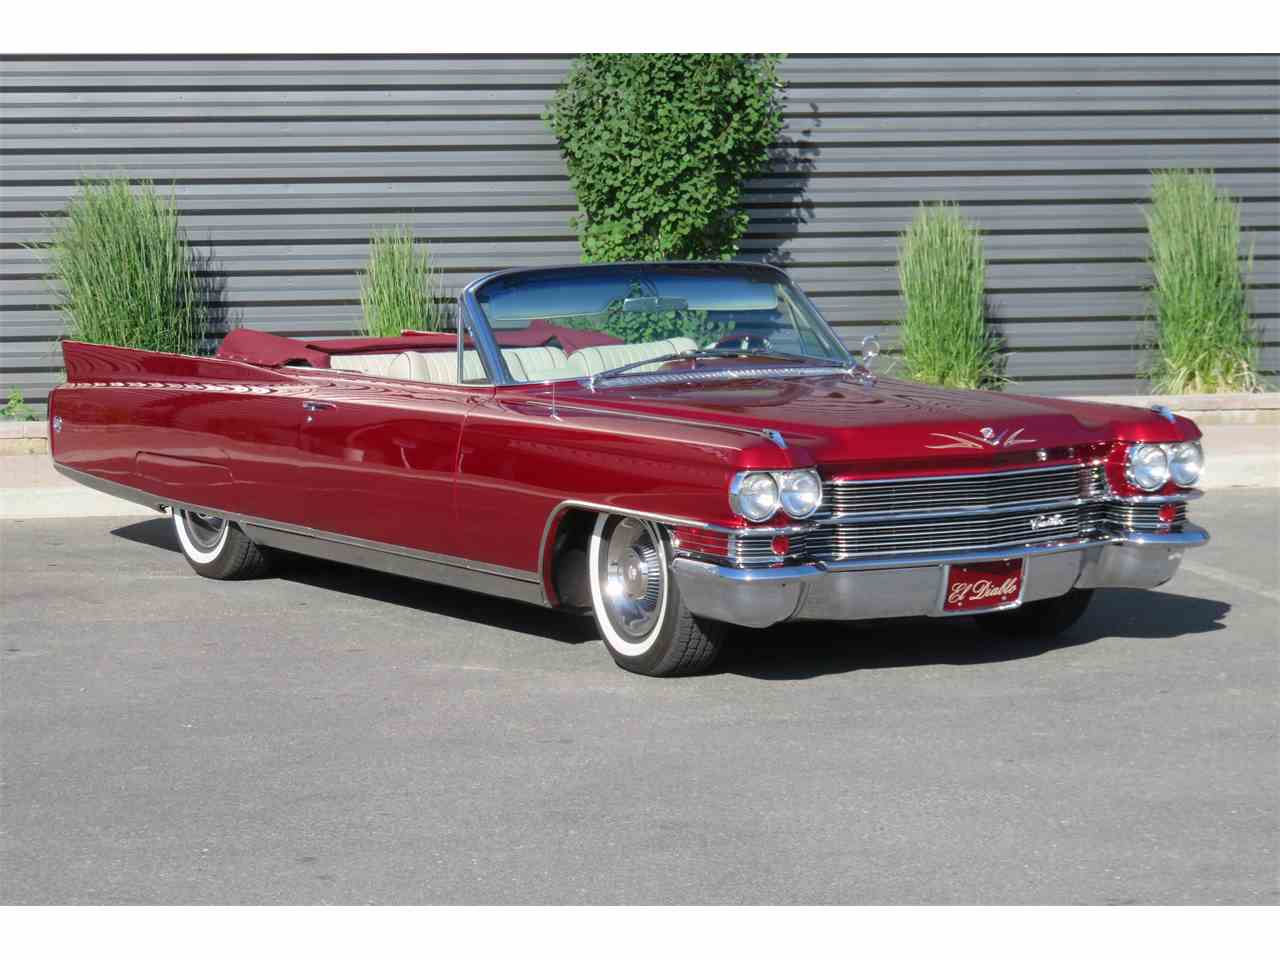 Trucks For 5000 And Under >> 1963 Cadillac Eldorado Biarritz for Sale | ClassicCars.com | CC-963104